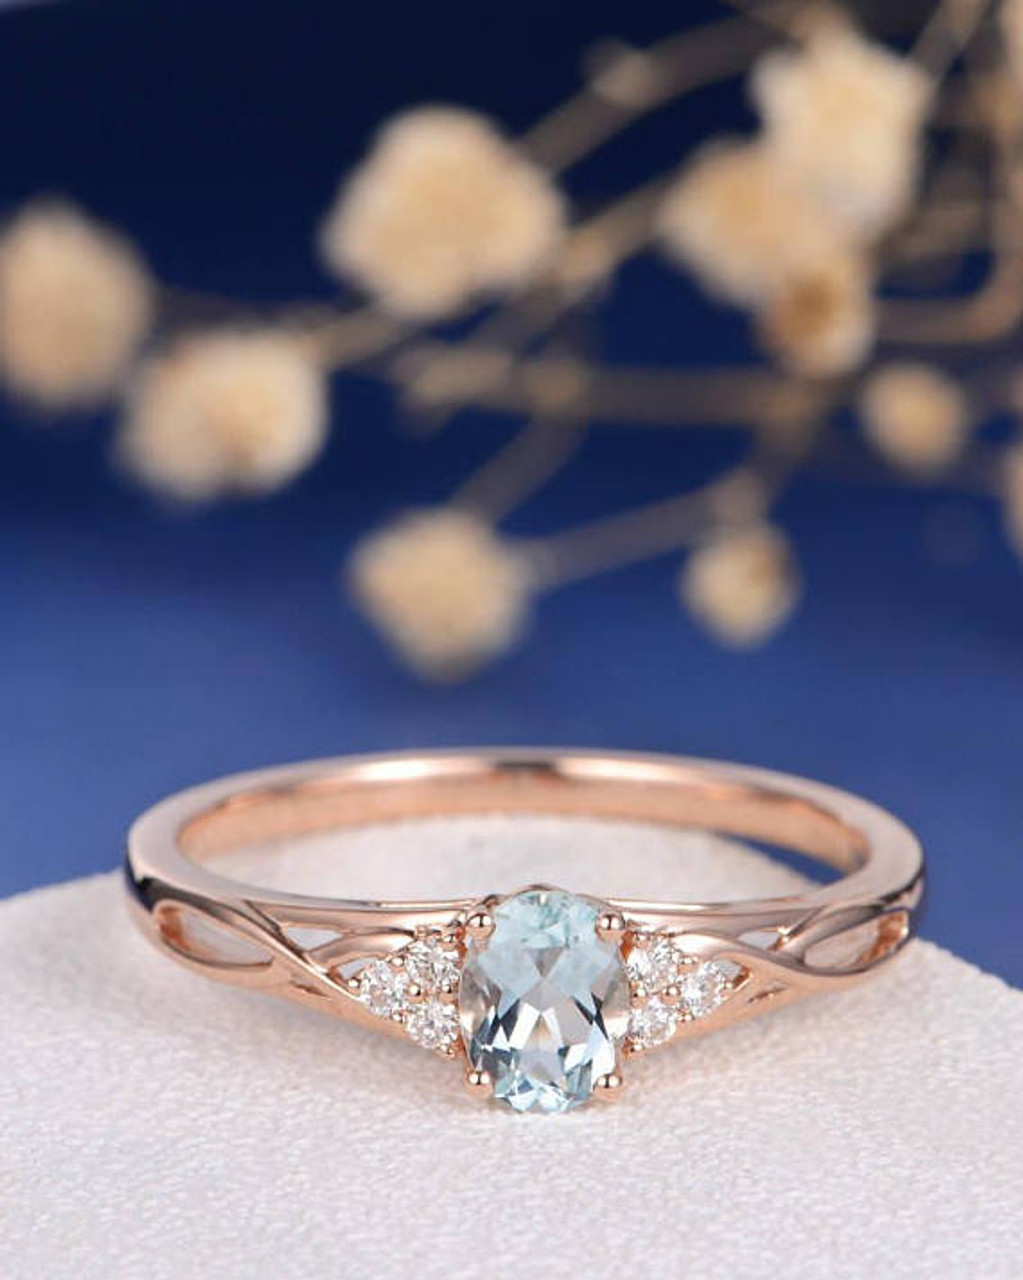 b89e66575044a Aquamarine Ring Engagement Ring Rose Gold Cluster Ring Oval Cut Infinity  Diamond Split Shank Antique Anniversary Promise birthstone Women